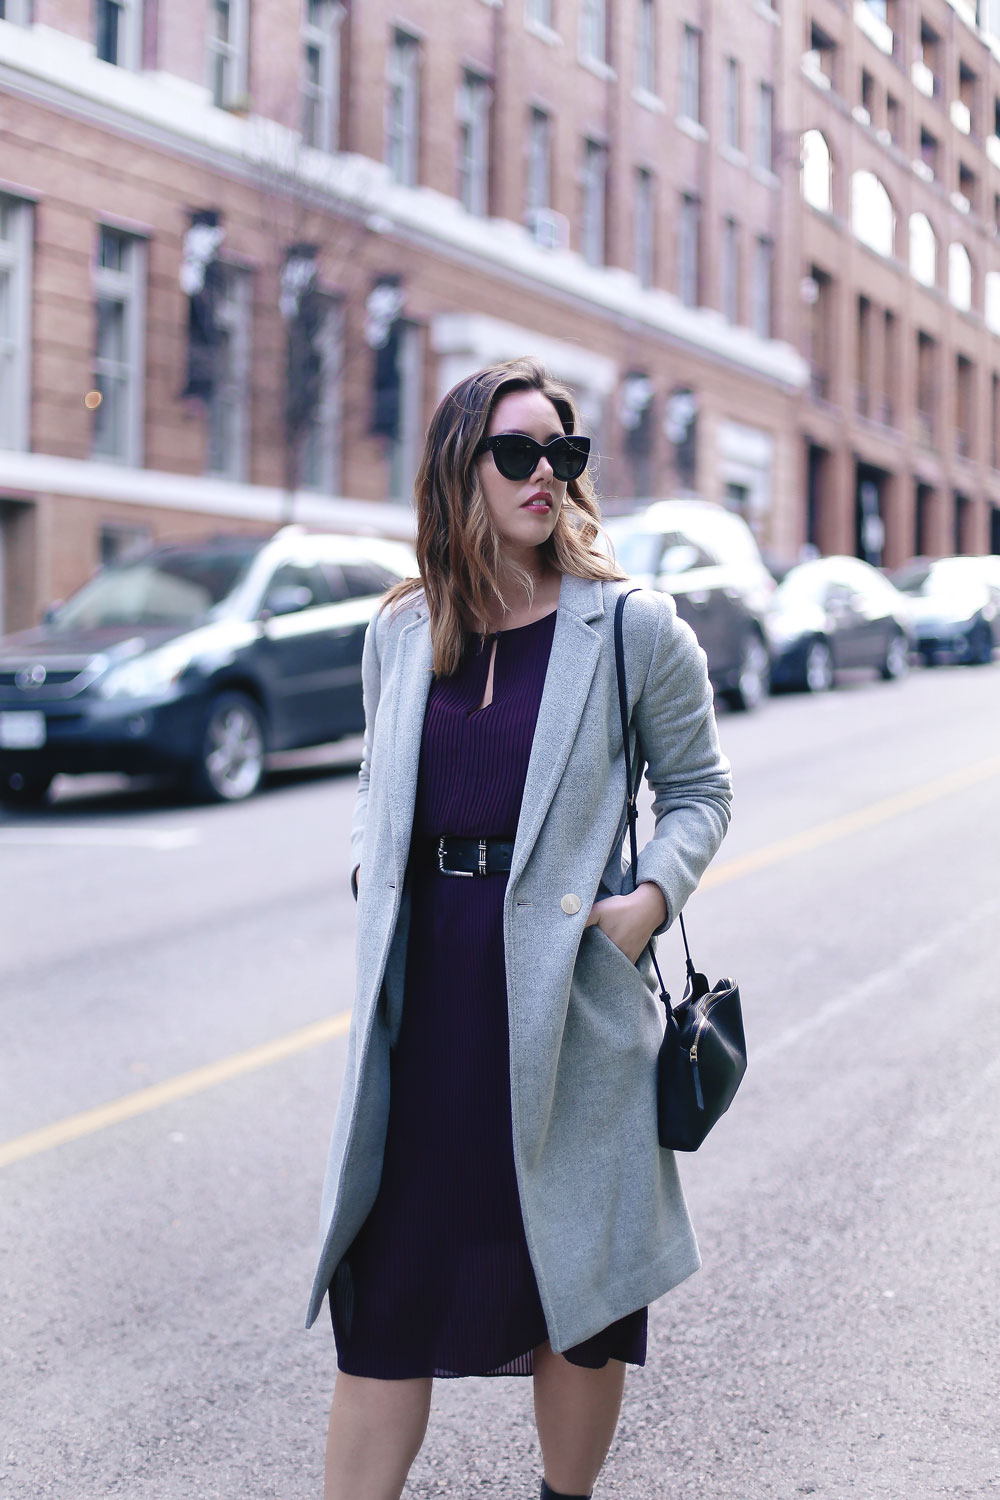 How to transition your style from winter into spring in an Aritzia dress, Aritzia wool coat, Aritzia black leather bag, Frye ankle boots